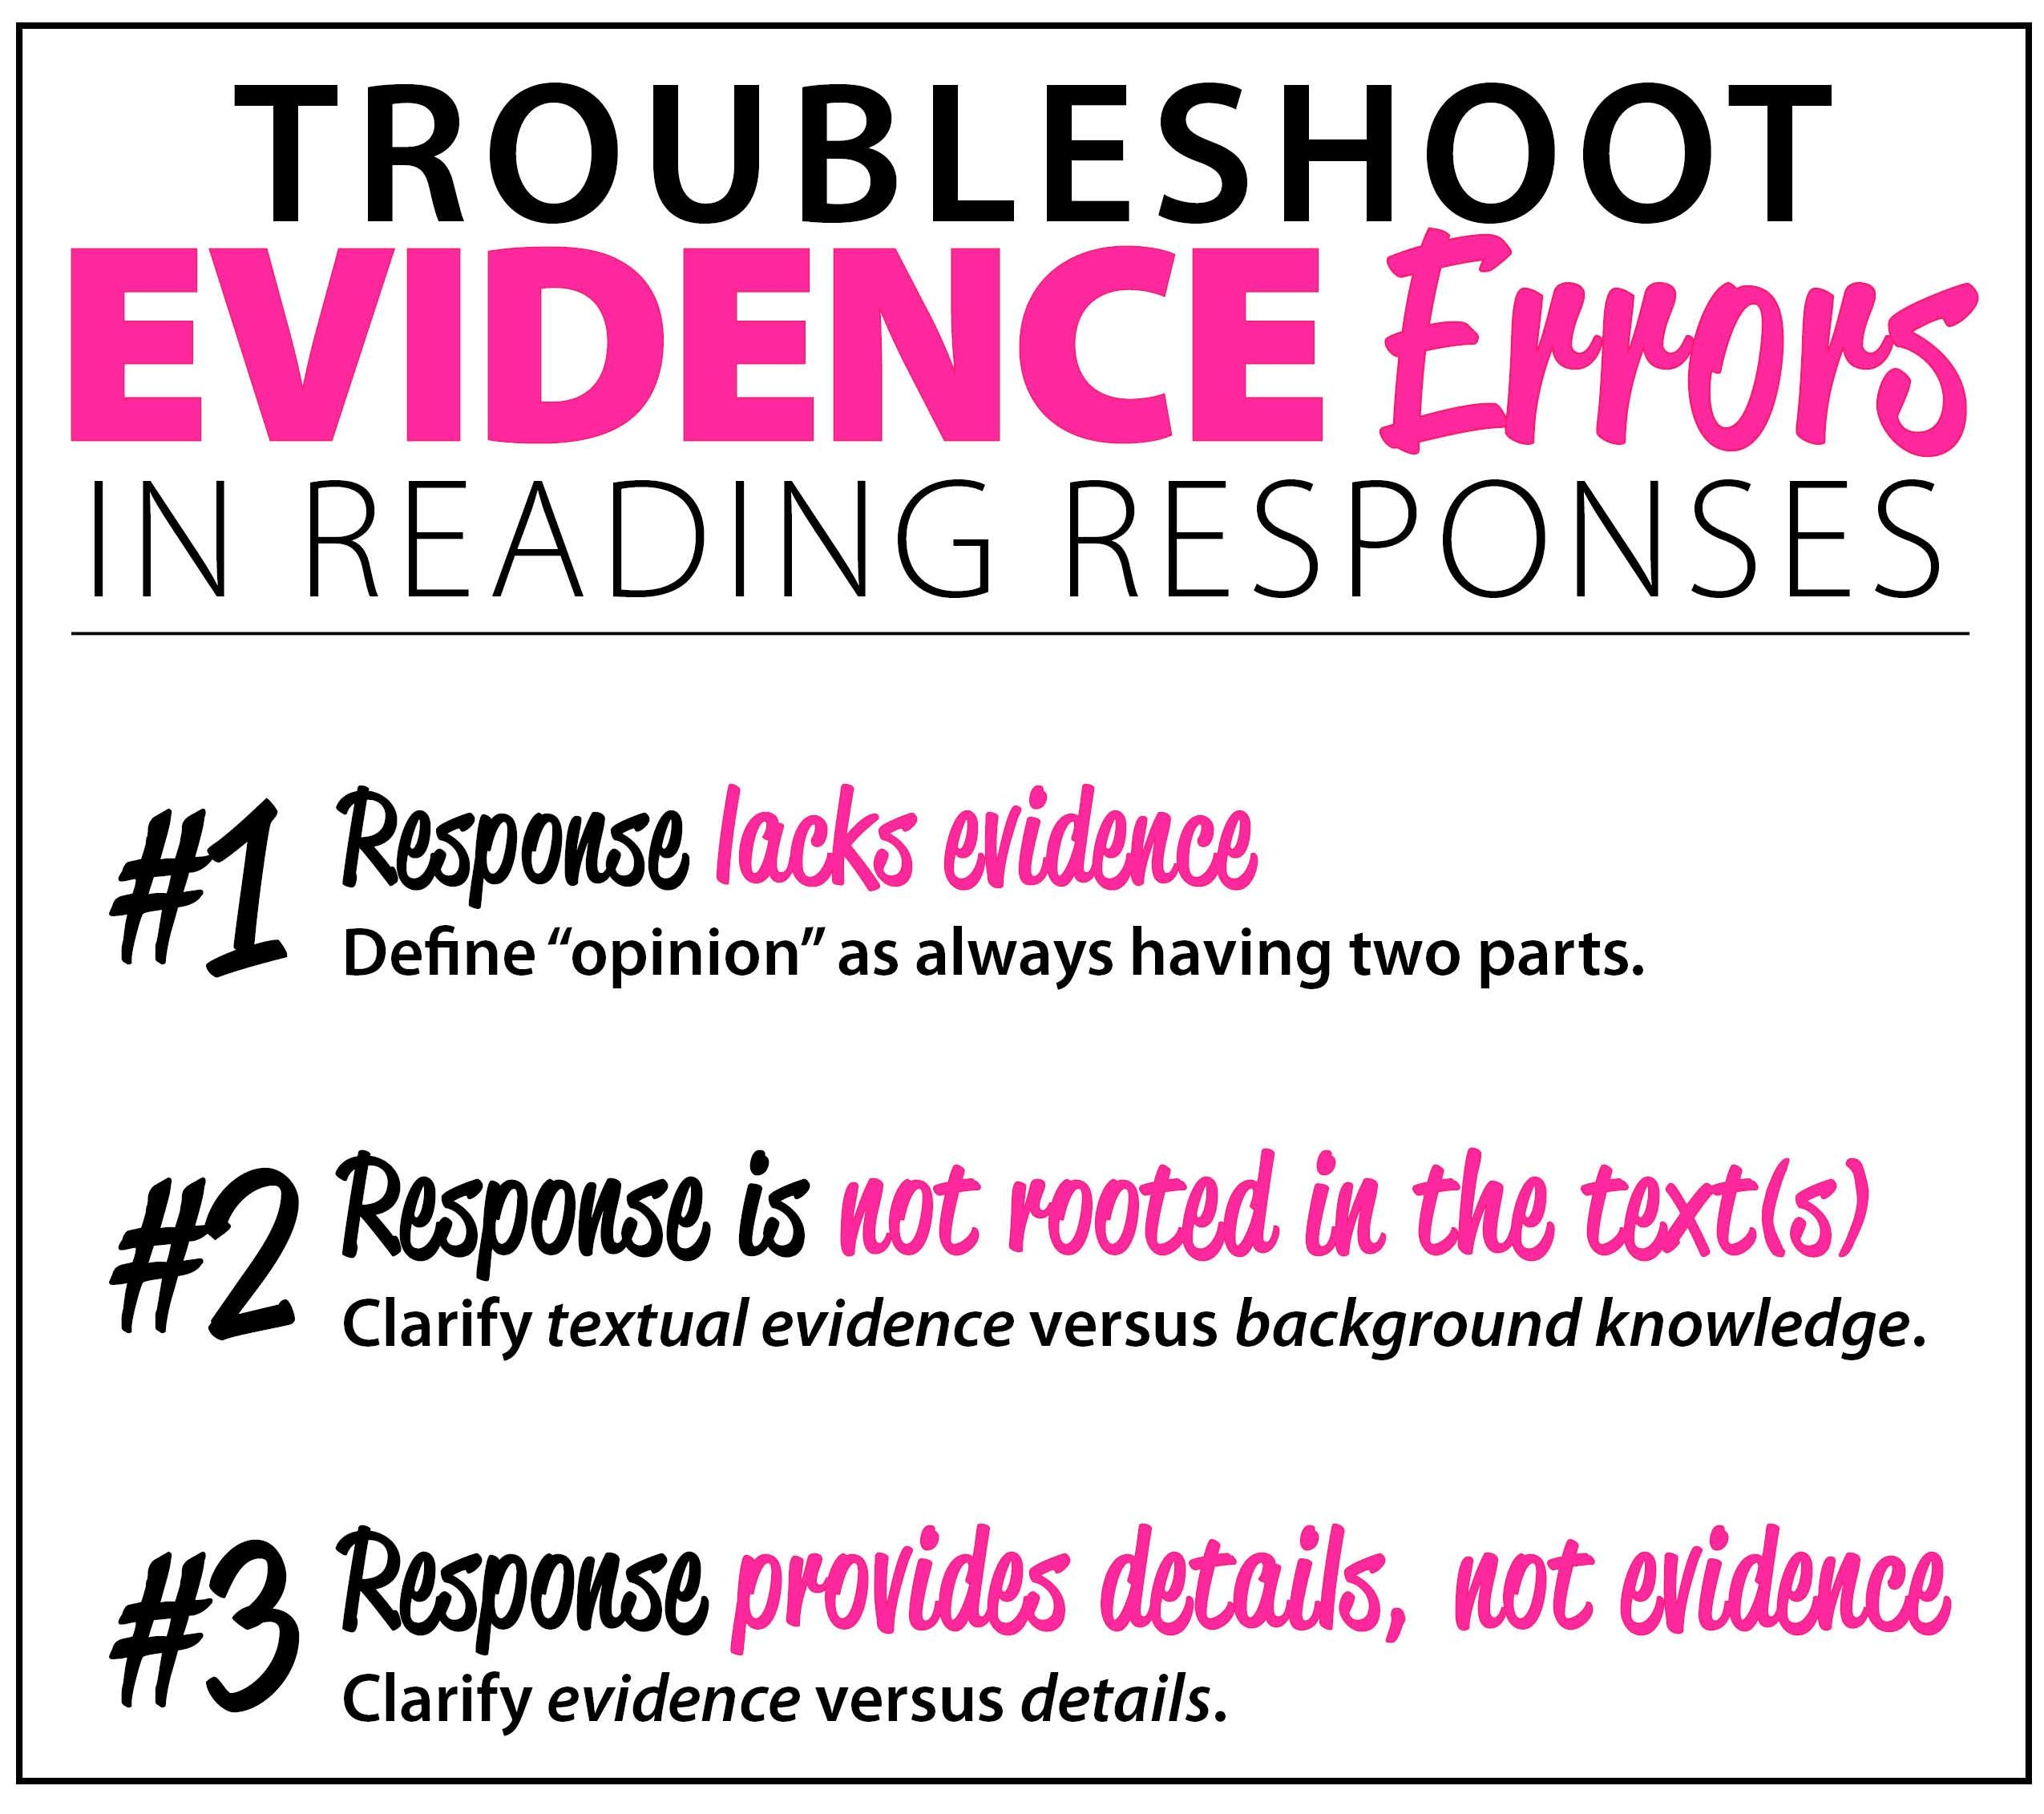 Troubleshoot Evidence Errors in Reading Responses for Standardized Tests